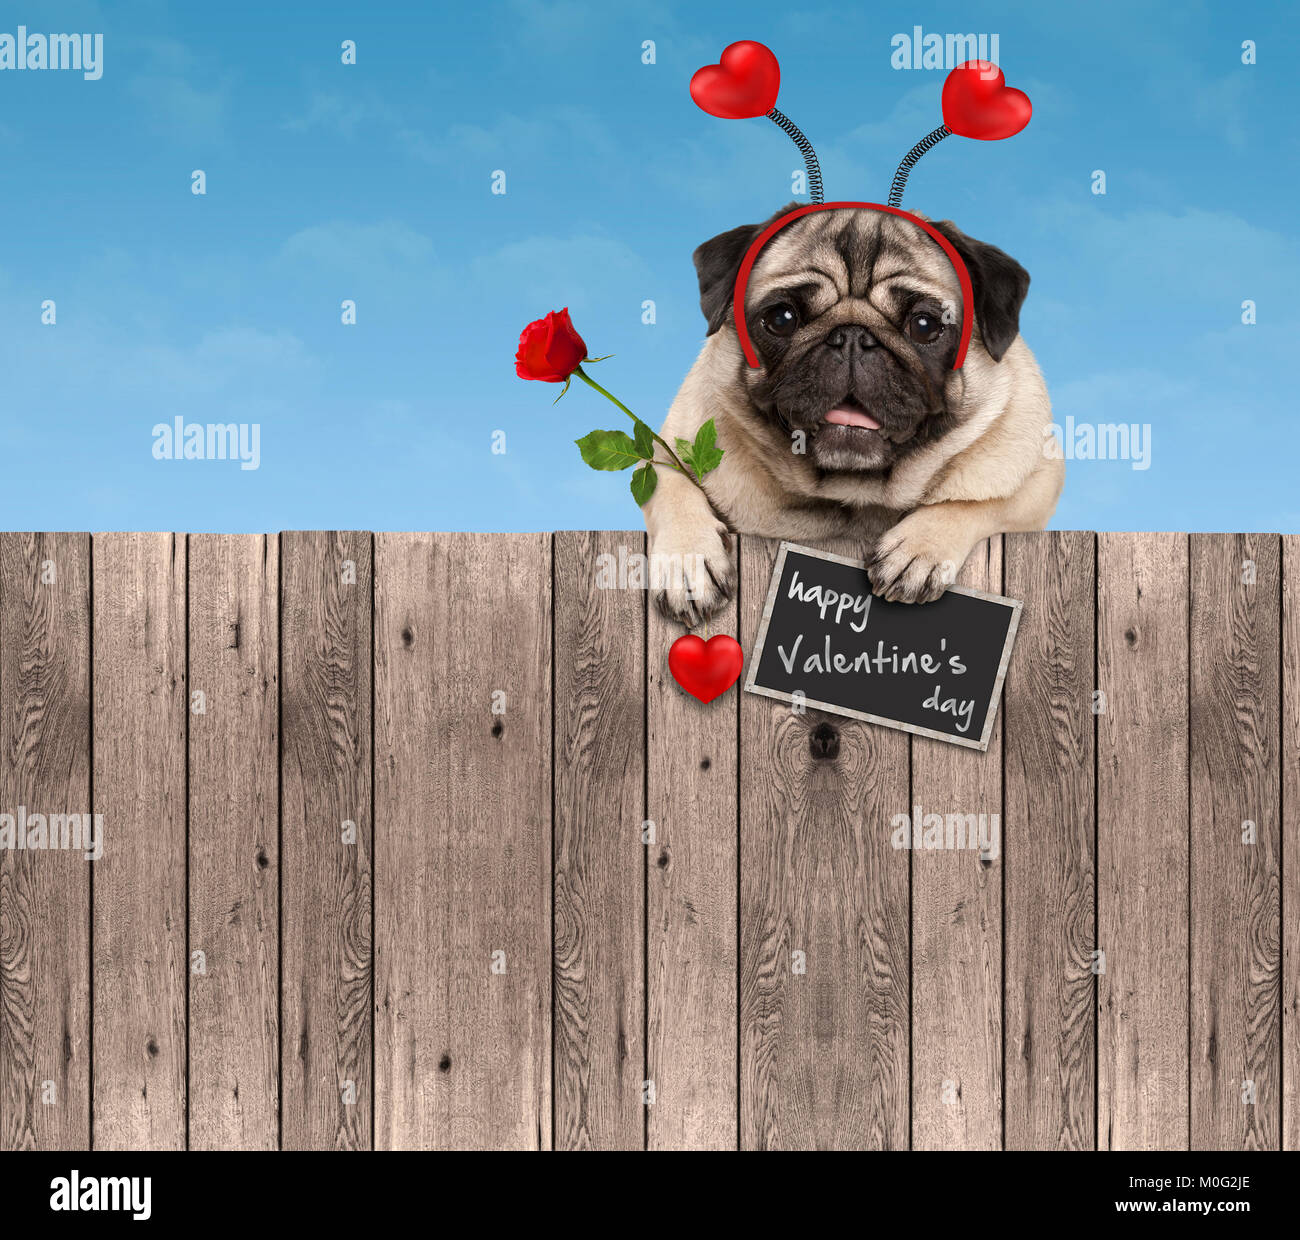 Valentines day pug dog with hearts diadem and rose, hanging on wooden fence, isolated on blue sky  background - Stock Image